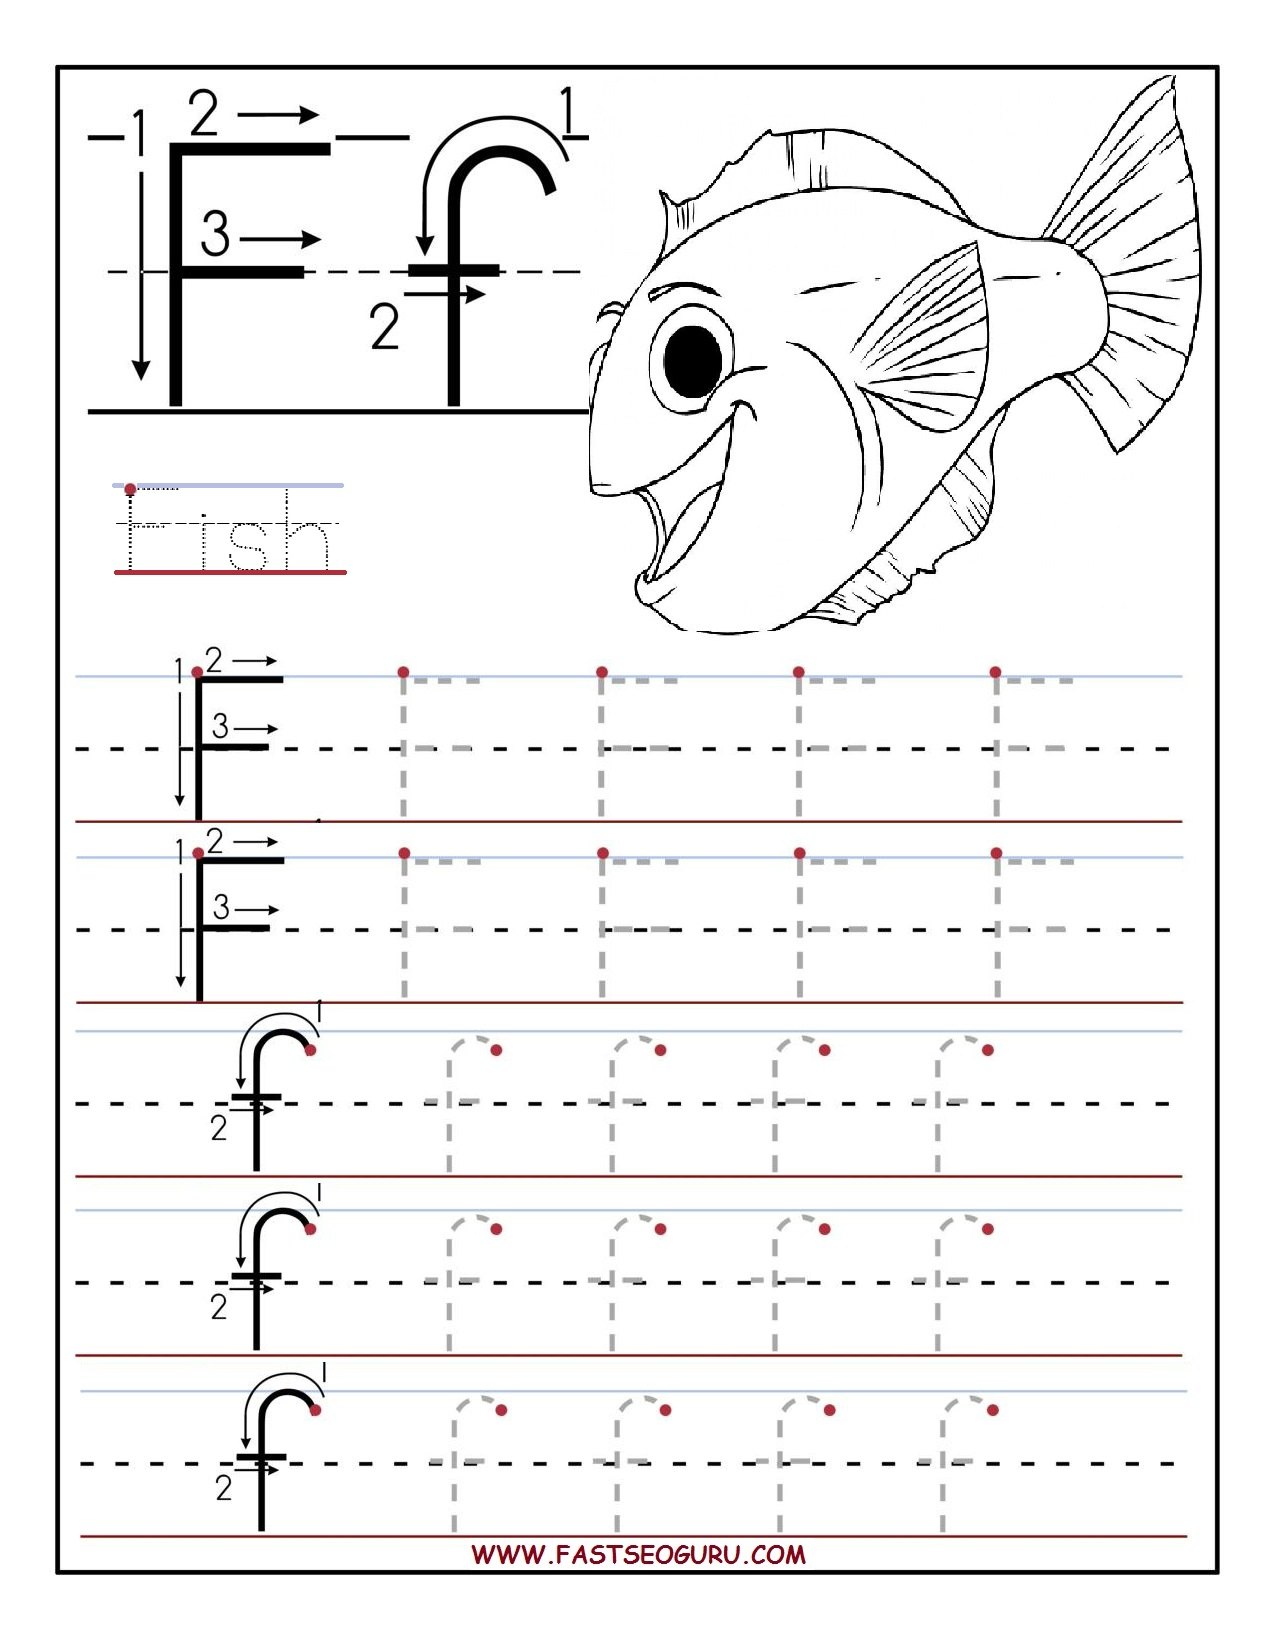 Tracing Worksheets Printable Letters And Worksheets